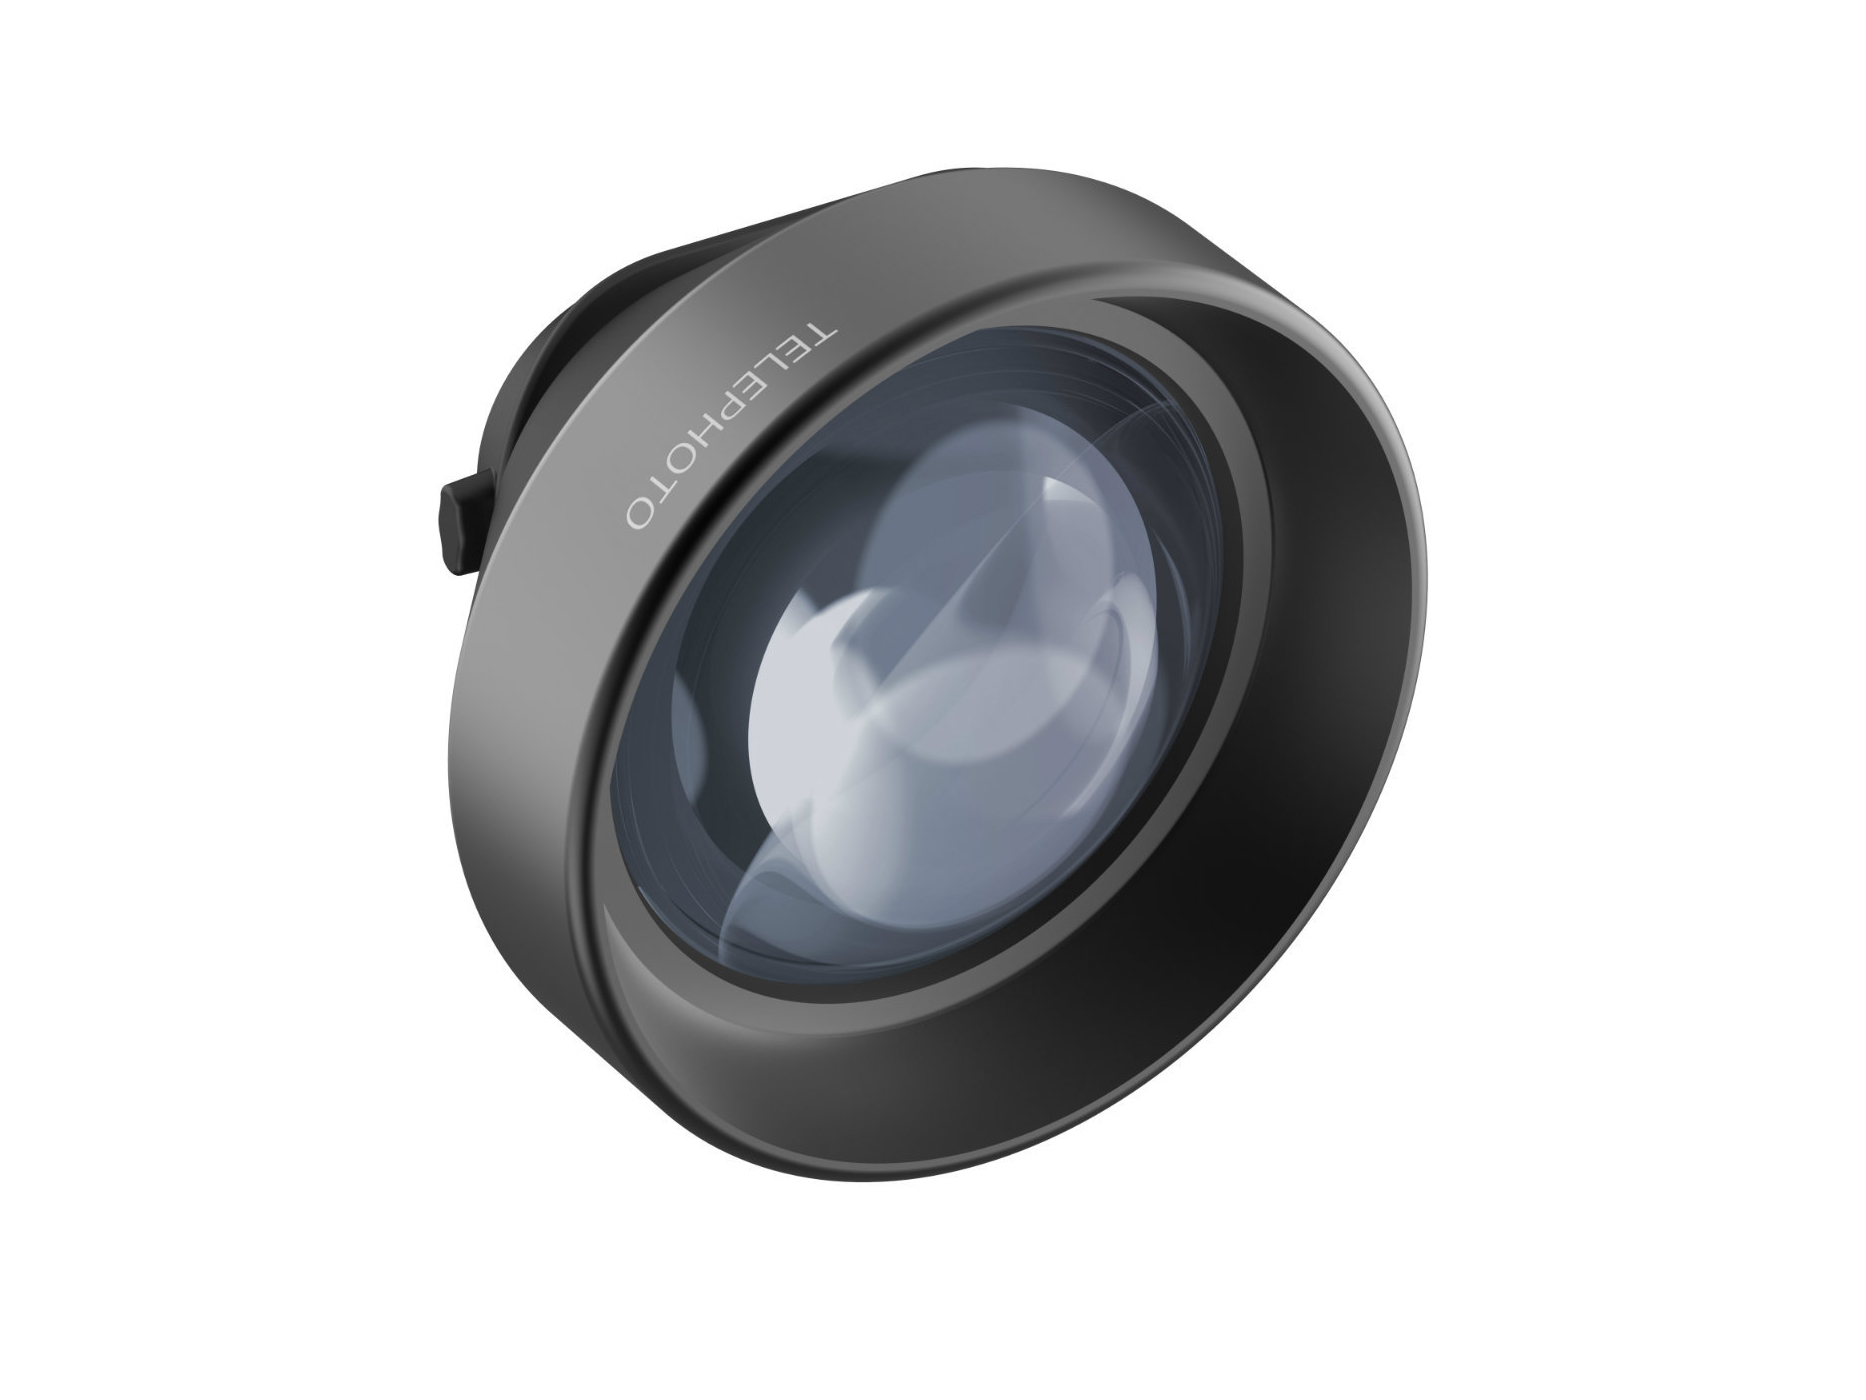 Olloclip introduces new 'Pro' and 'Intro' series lenses for Android